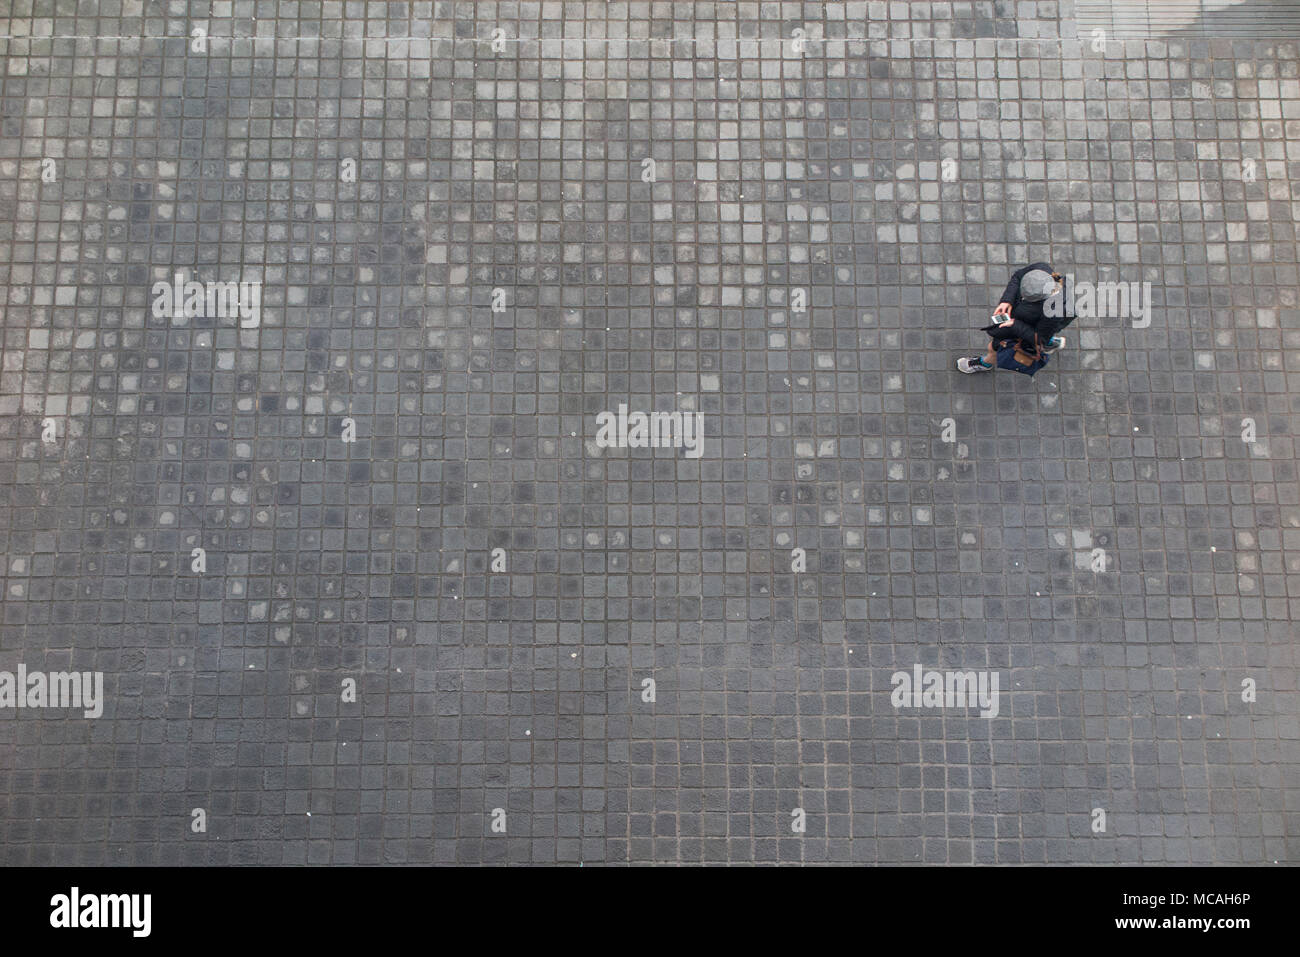 Looking down from high above on a pedestrian who is checking their mobile phone whilst walking along a cobbled pavement - Stock Image